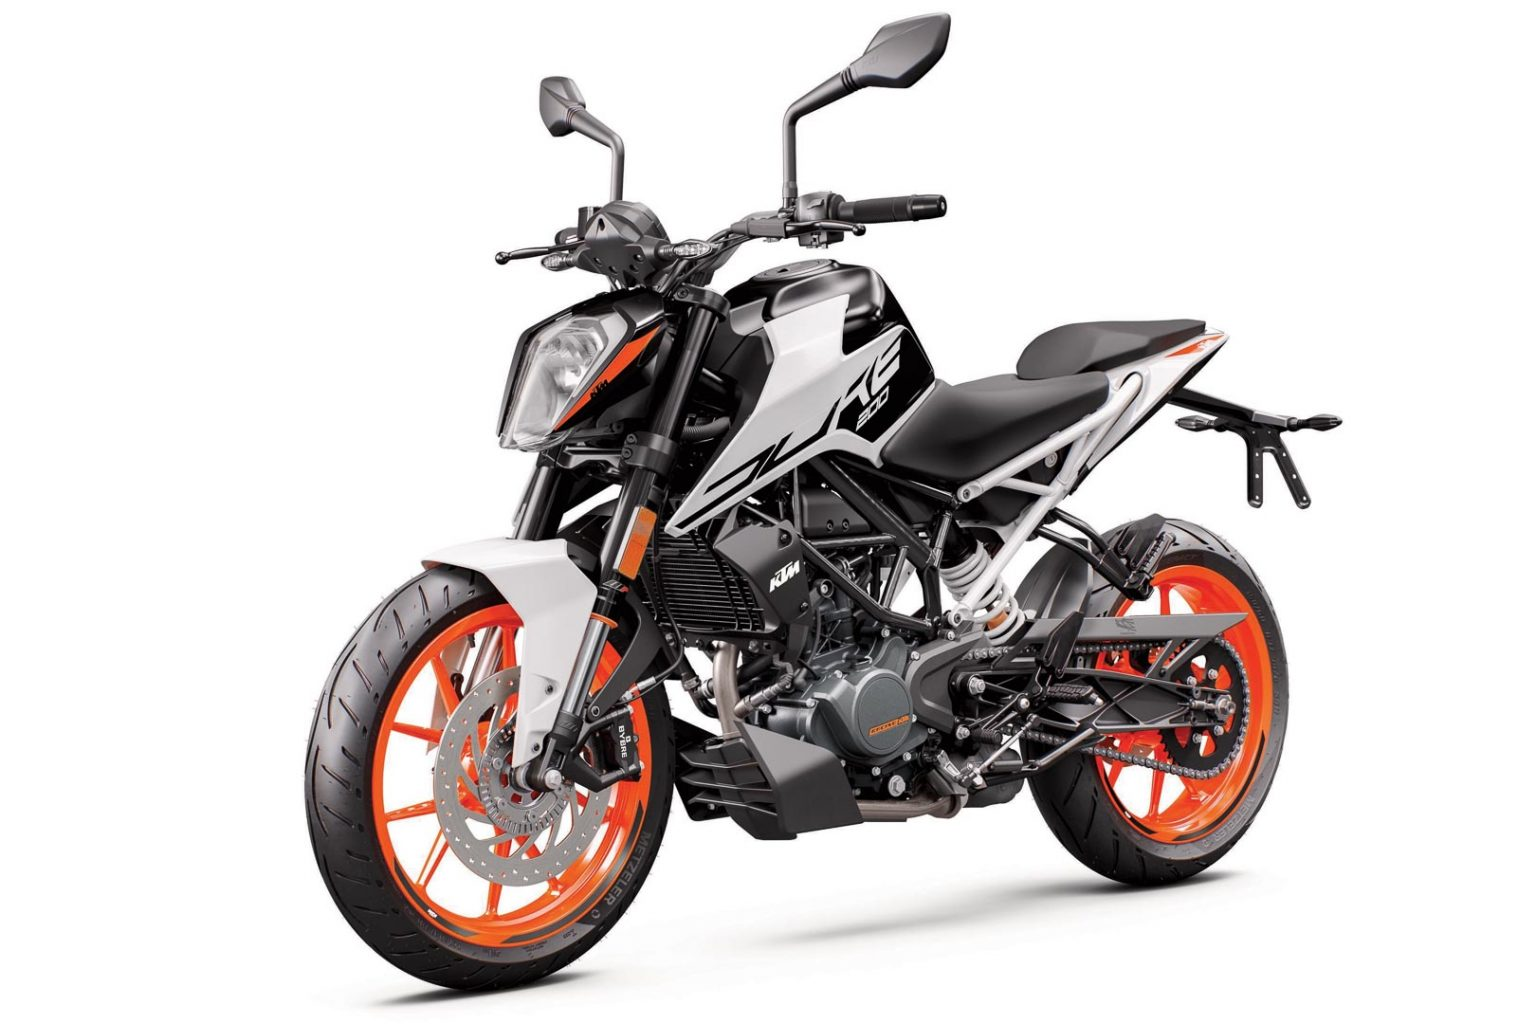 2020 KTM 200 DUKE FIRST LOOK (8 FAST FACTS, SPECS, AND PHOTOS)